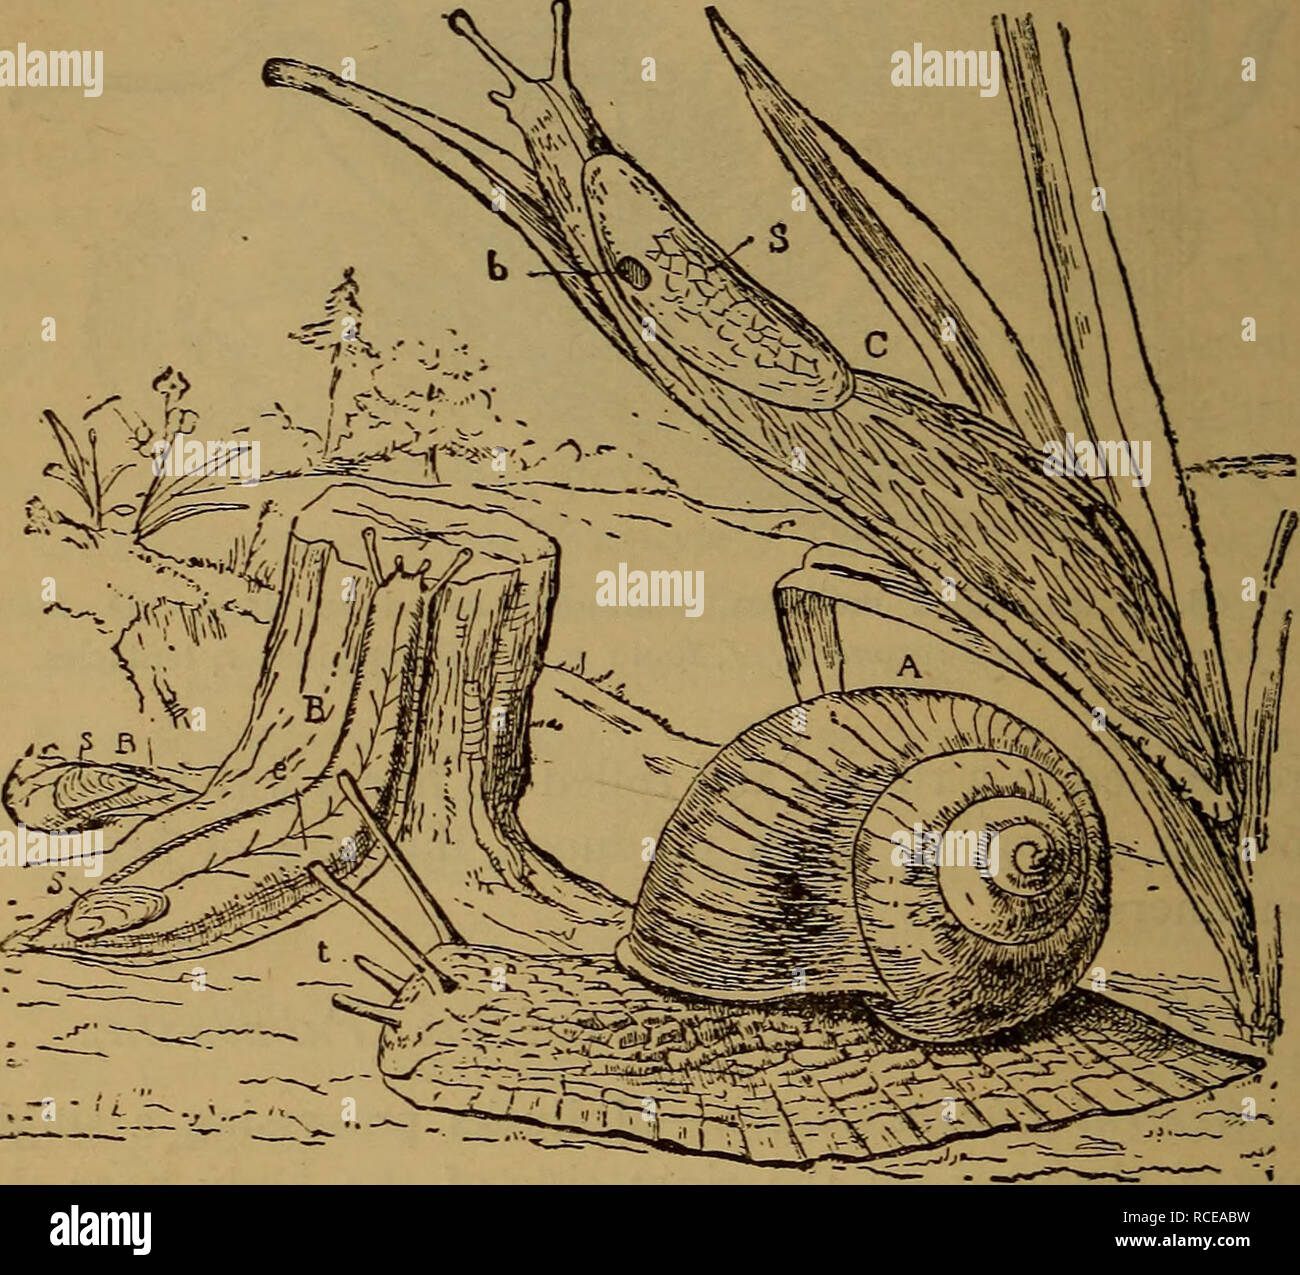 . Elements of zoölogy. Zoology. 66 MOLLUSC A. snails, interesting from the great variations of the shell. The eggs are laid in capsules (Fig. 69), in a jelly-like mass, late in the spring. In the winter they hibernate in the mud ; 320 species are known. Land-Snails (Heliadce).—Three thousand three hun- dred and thirty-two species of these are known in various. FlG. 70.—Air-breathing gasteropods : Snails and slugs. A, garden snail {Helix) ; B, B, slug Testacella—one disappeai-ing into the ground, and only the tail showing ; C, the great gray slug (Limax) ; s, shell; t, ten- tacles ; e, eyes ; b Stock Photo